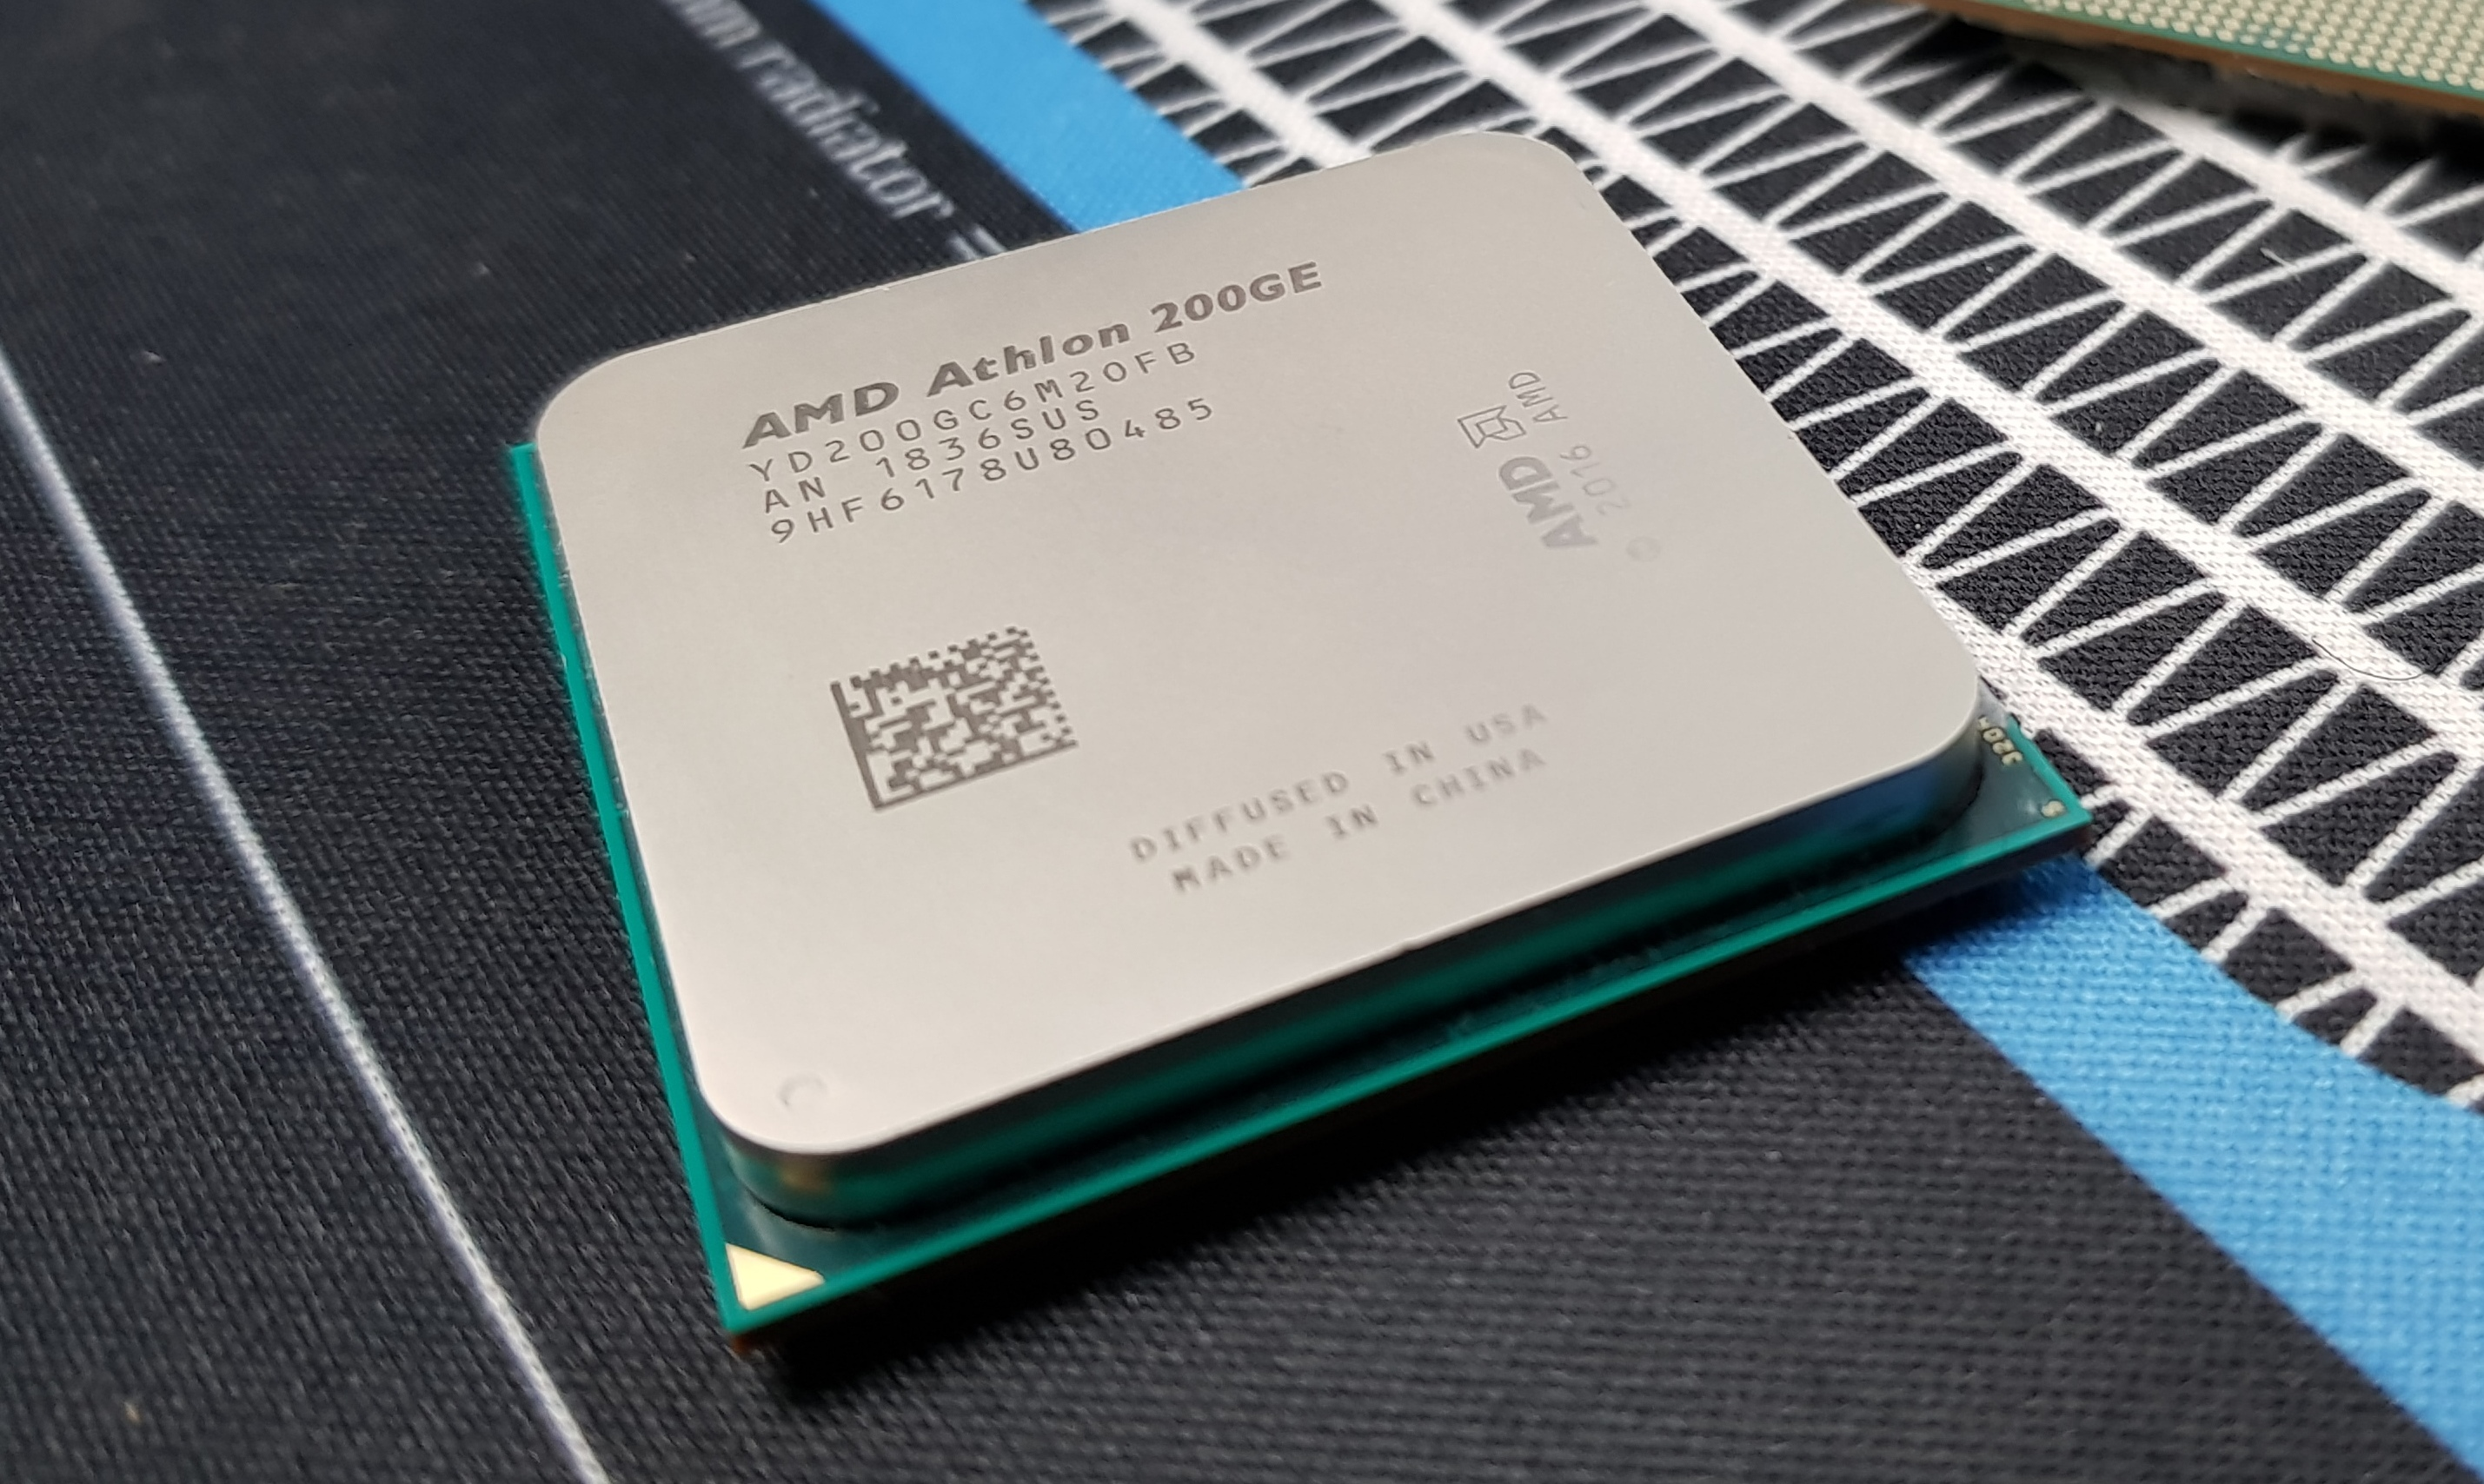 AMD Athlon 220GE and Athlon 240GE with Radeon Vega Graphics